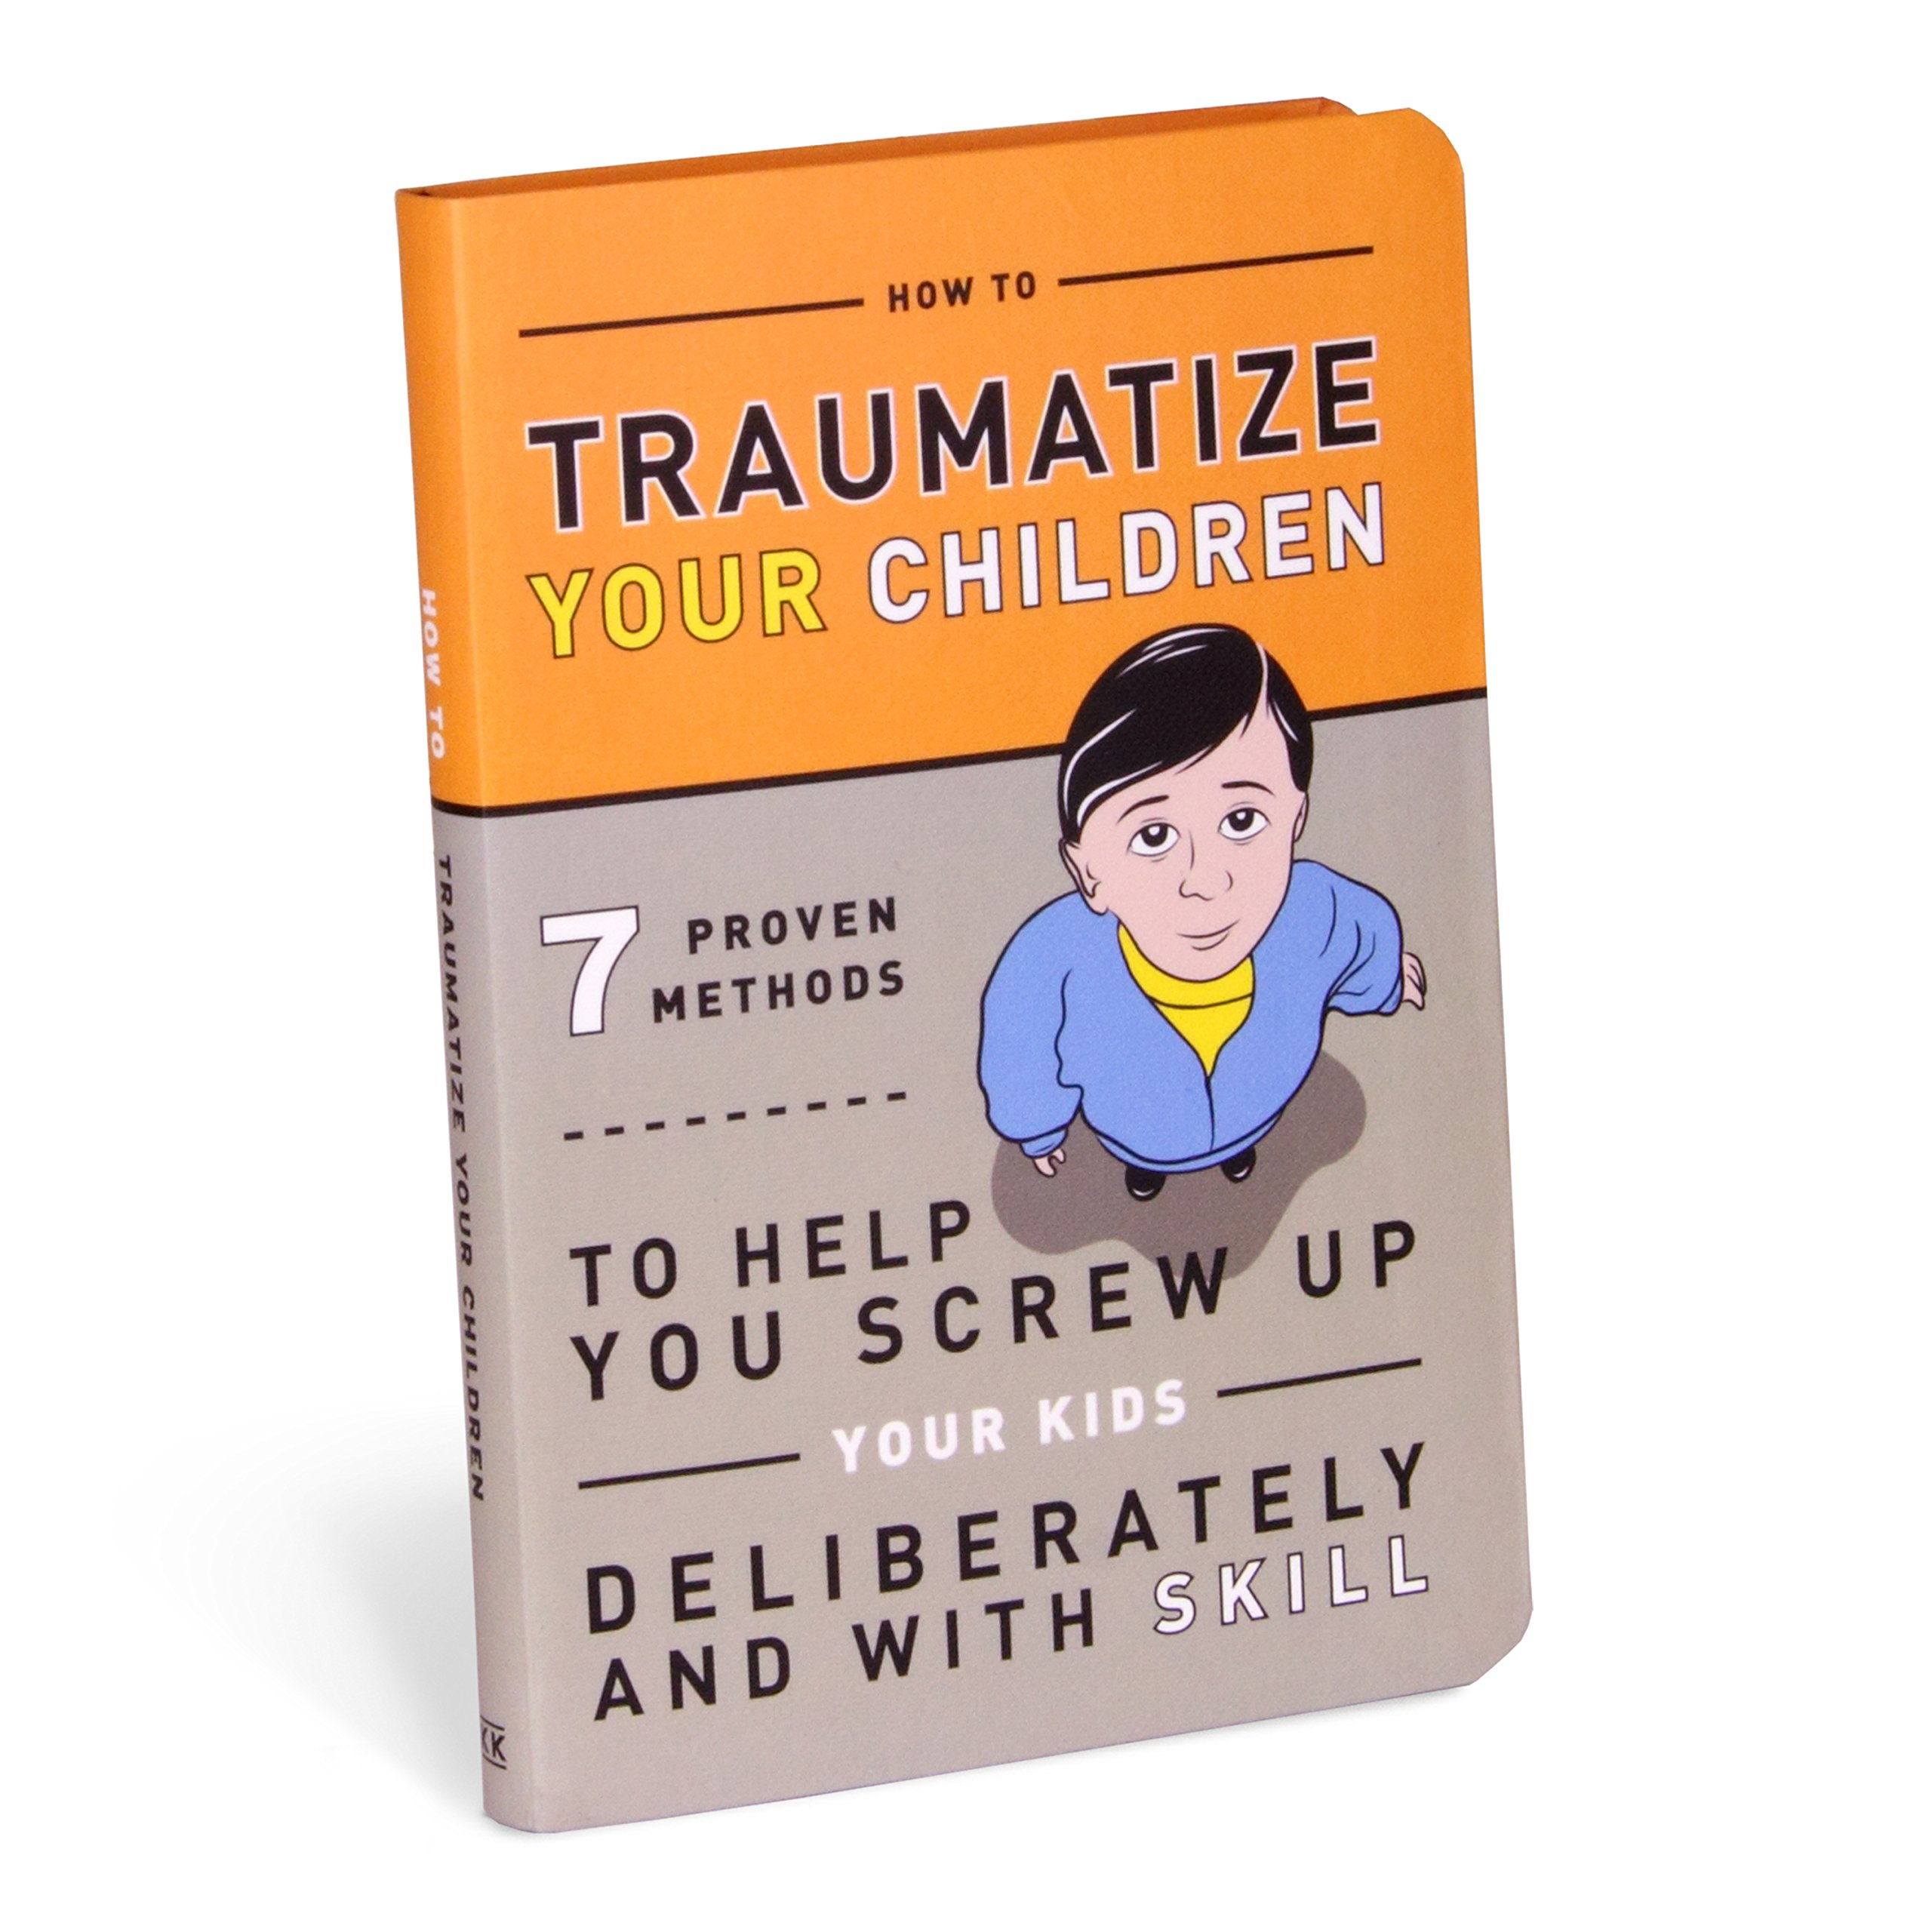 Knock Knock: How to Traumatize Your Children: 7 Proven Methods to Help You Screw Up Your Kids Deliberately and with Skill (Books & Other Words)